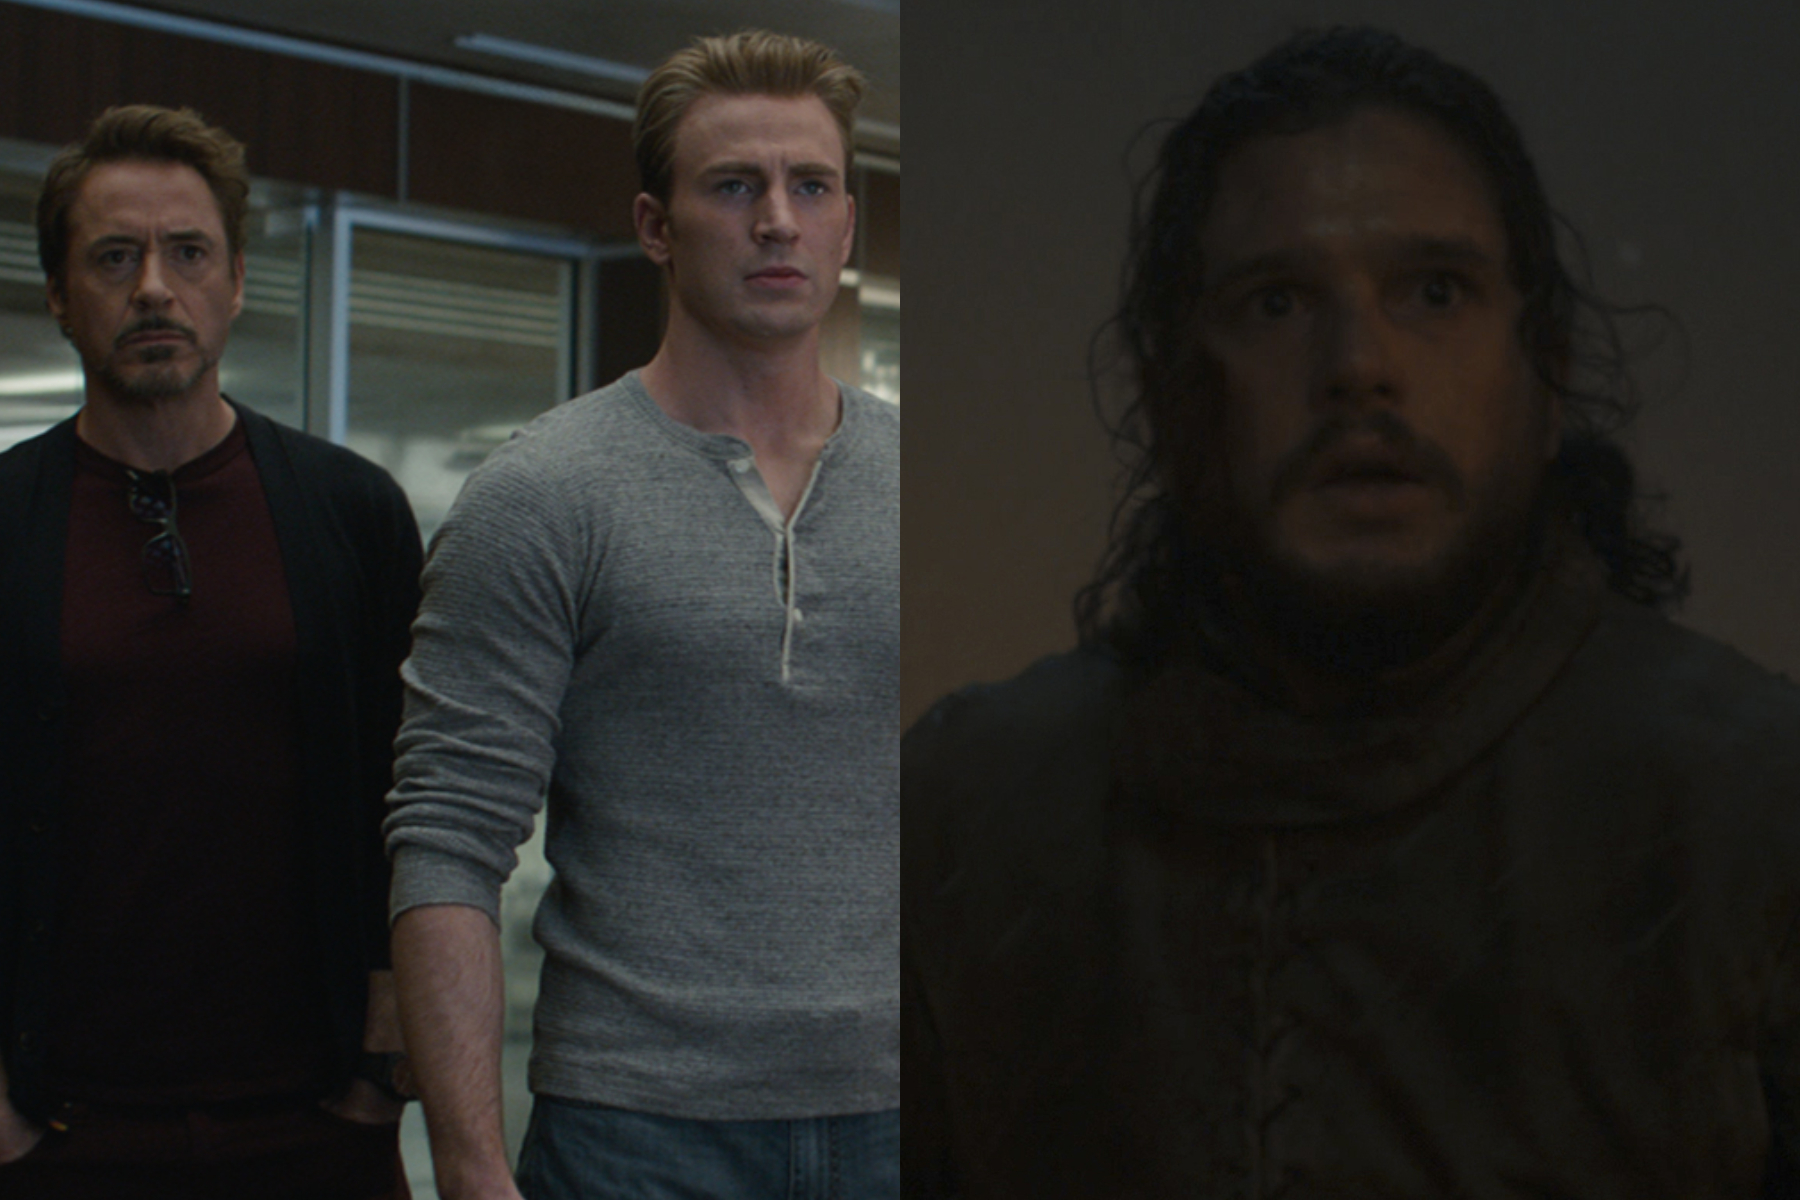 Avengers: Endgame and Game of Thrones show how geek culture conquered